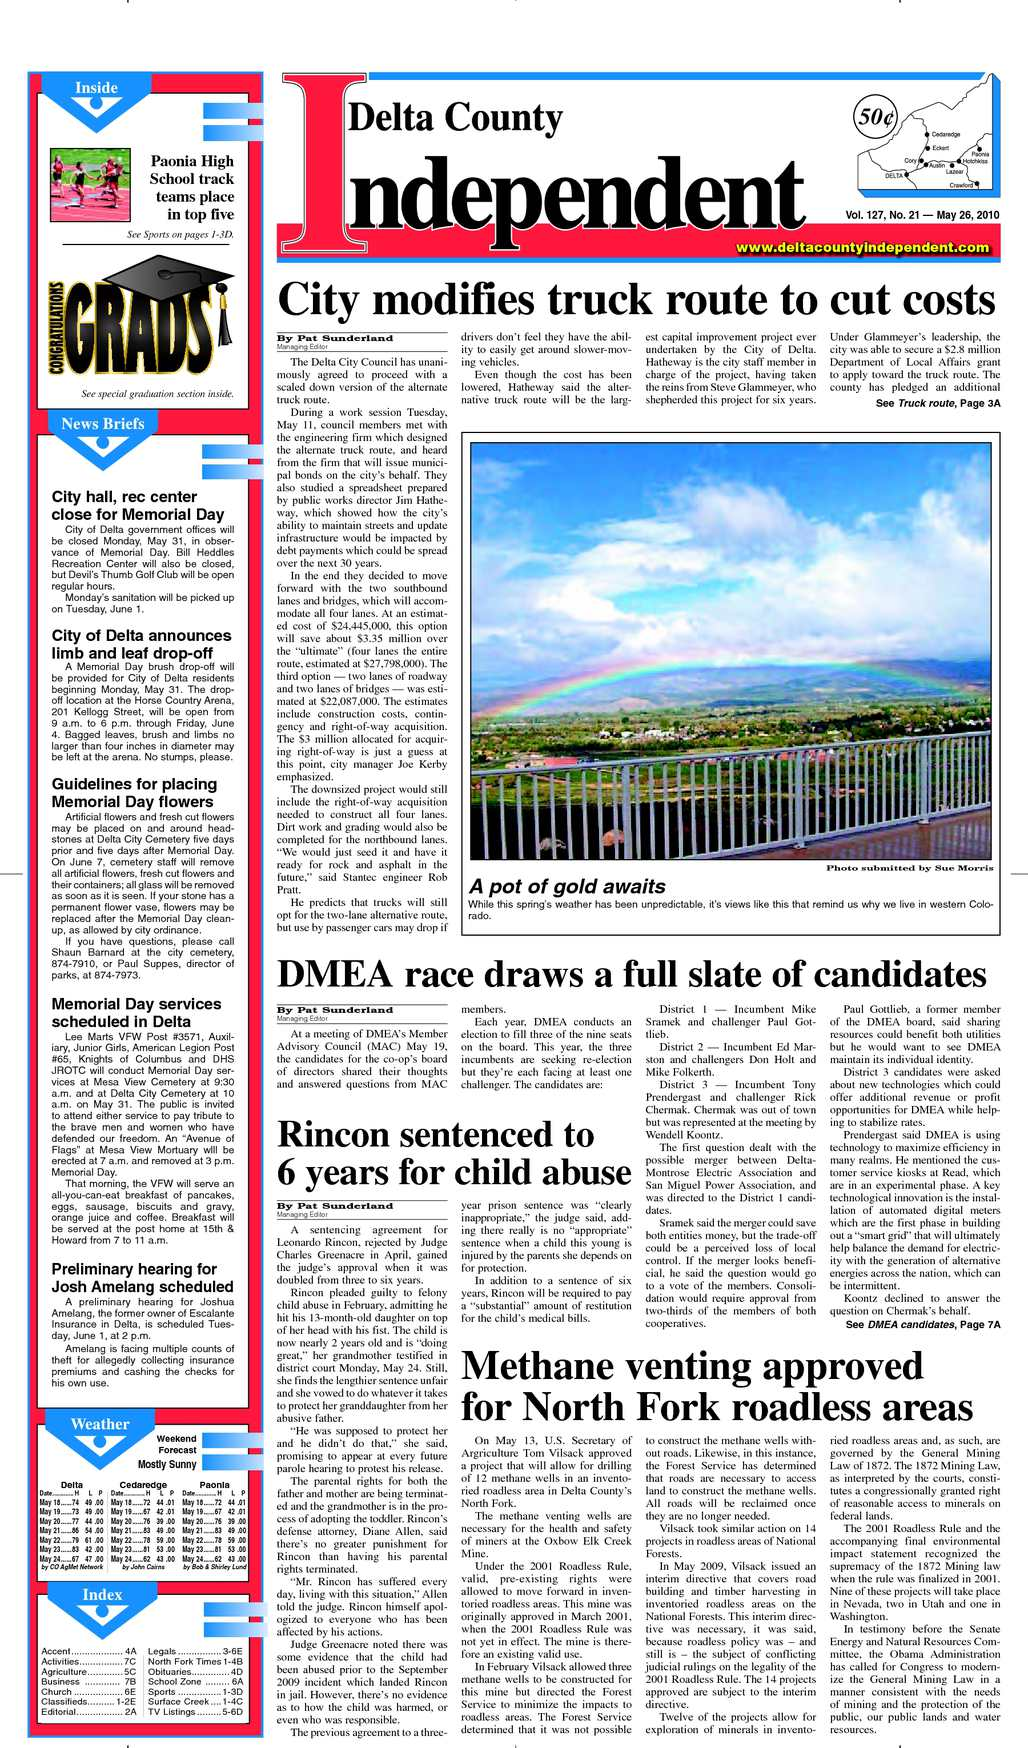 Calaméo Delta County Independent, Issue 21, May 26, 2010